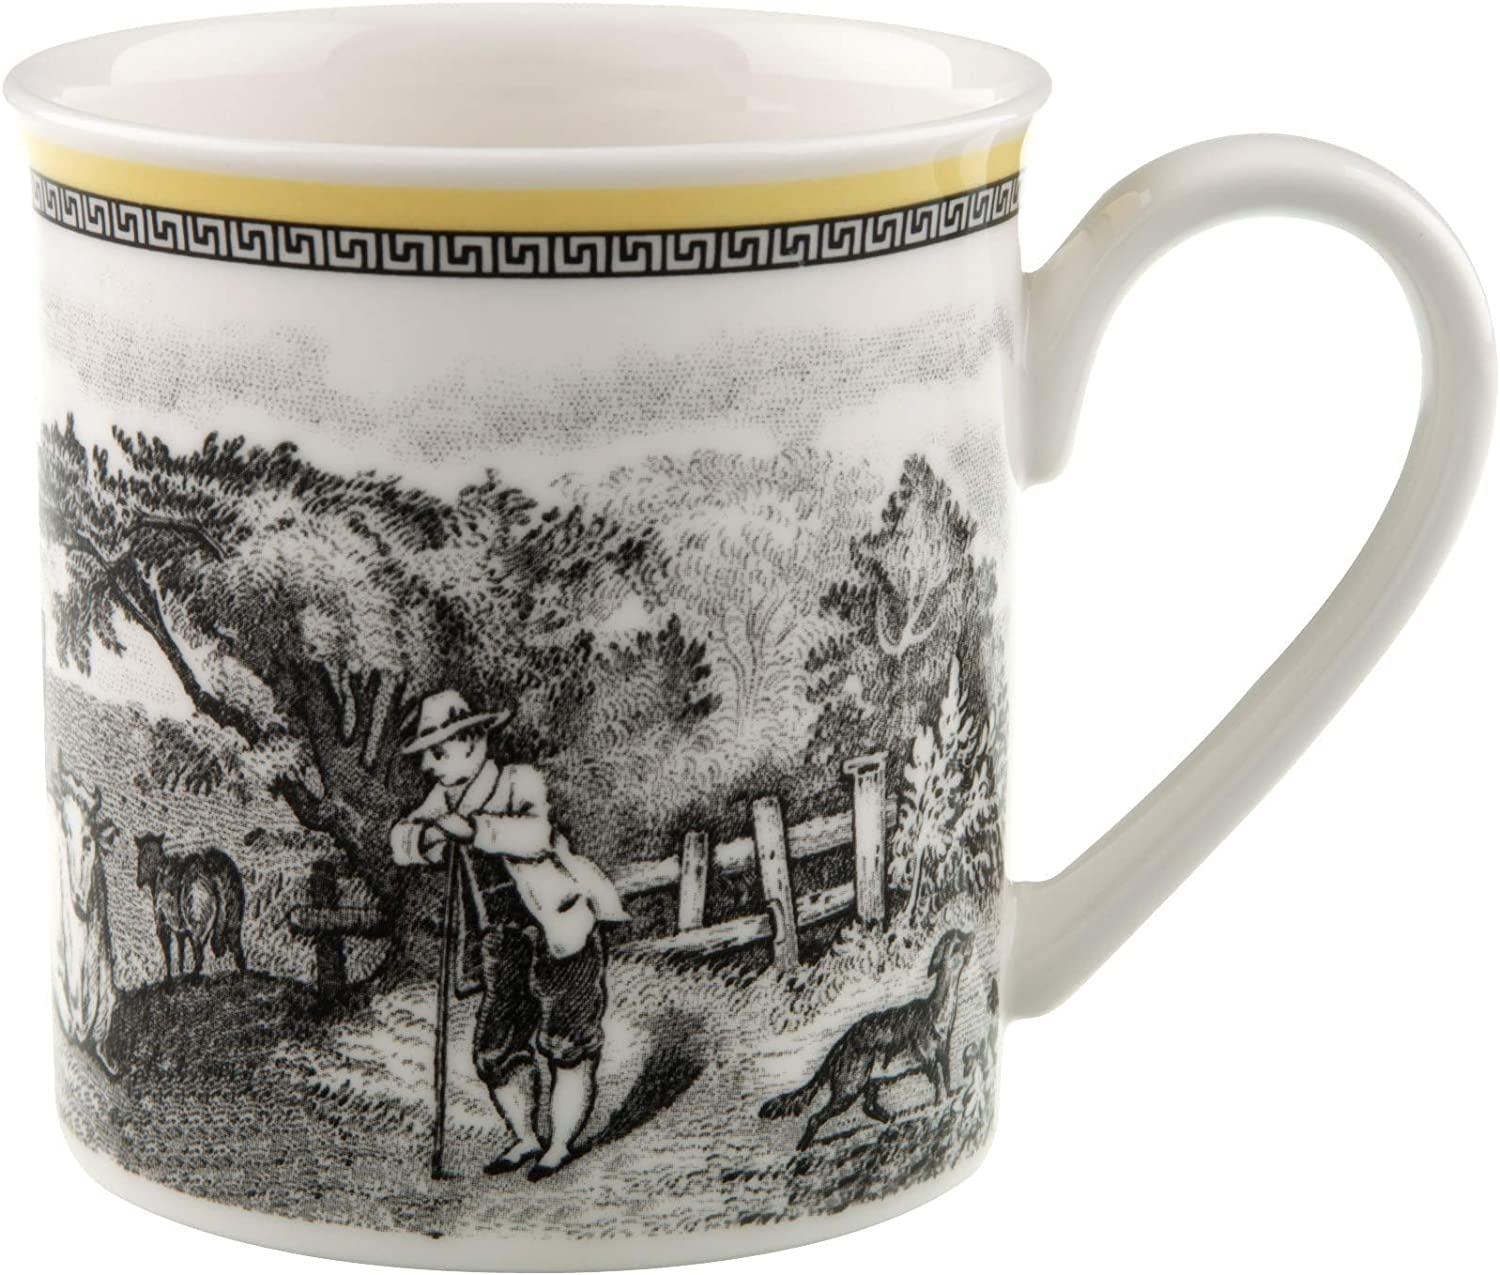 Audun Ferme Coffee Mug by Villeroy & Boch - Premium Porcelain - Made in Germany - Dishwasher and Microwave Safe - 10 Ounce Capacity